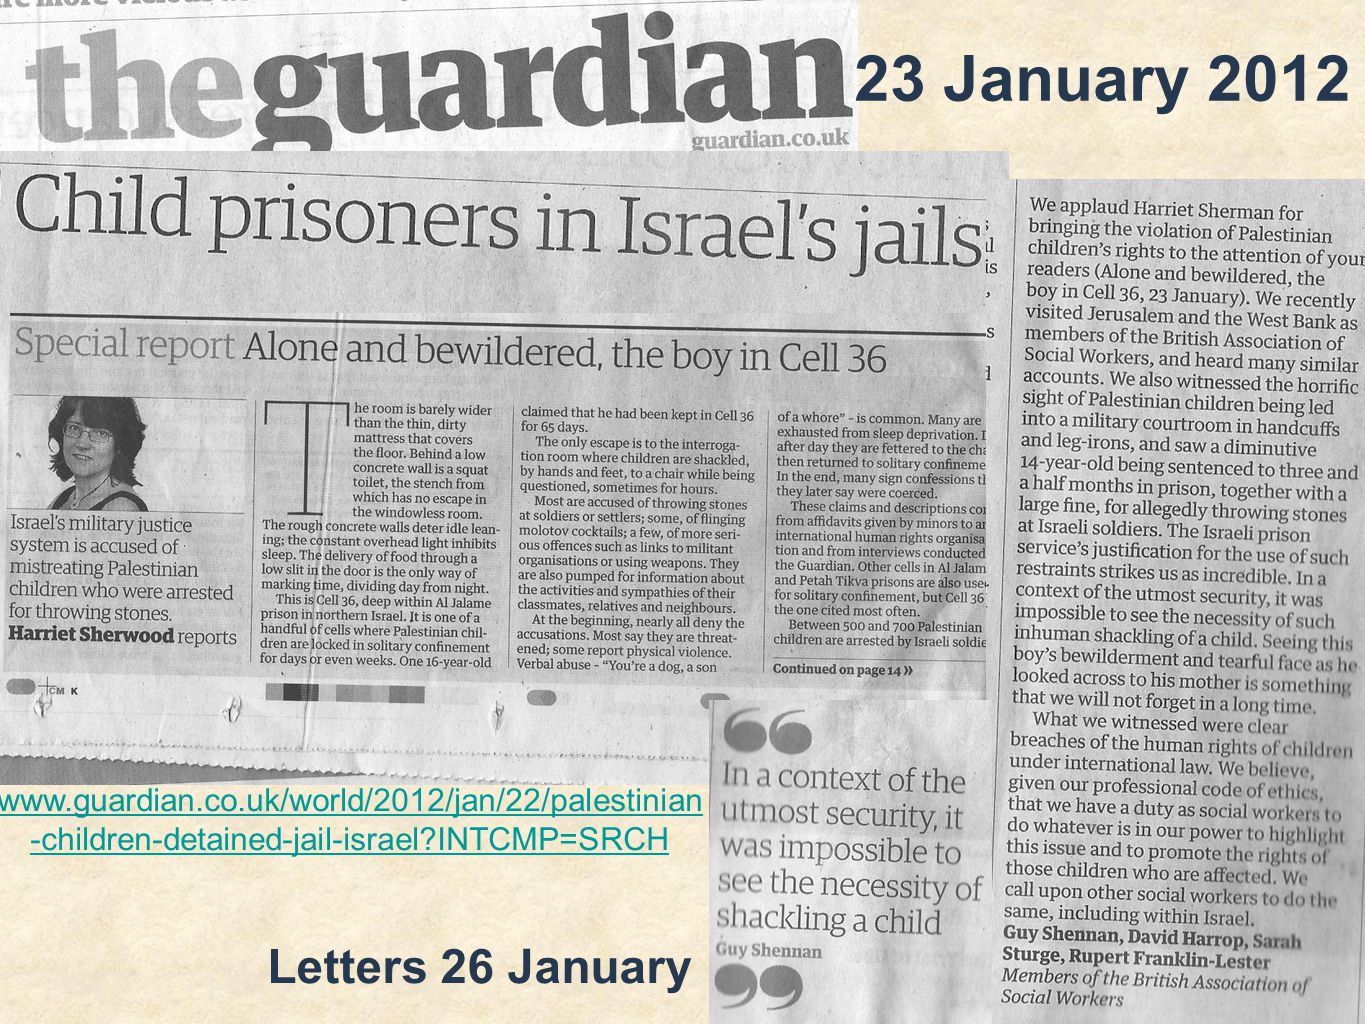 23 January 2012 Letters 26 January   -children-detained-jail-israel INTCMP=SRCH